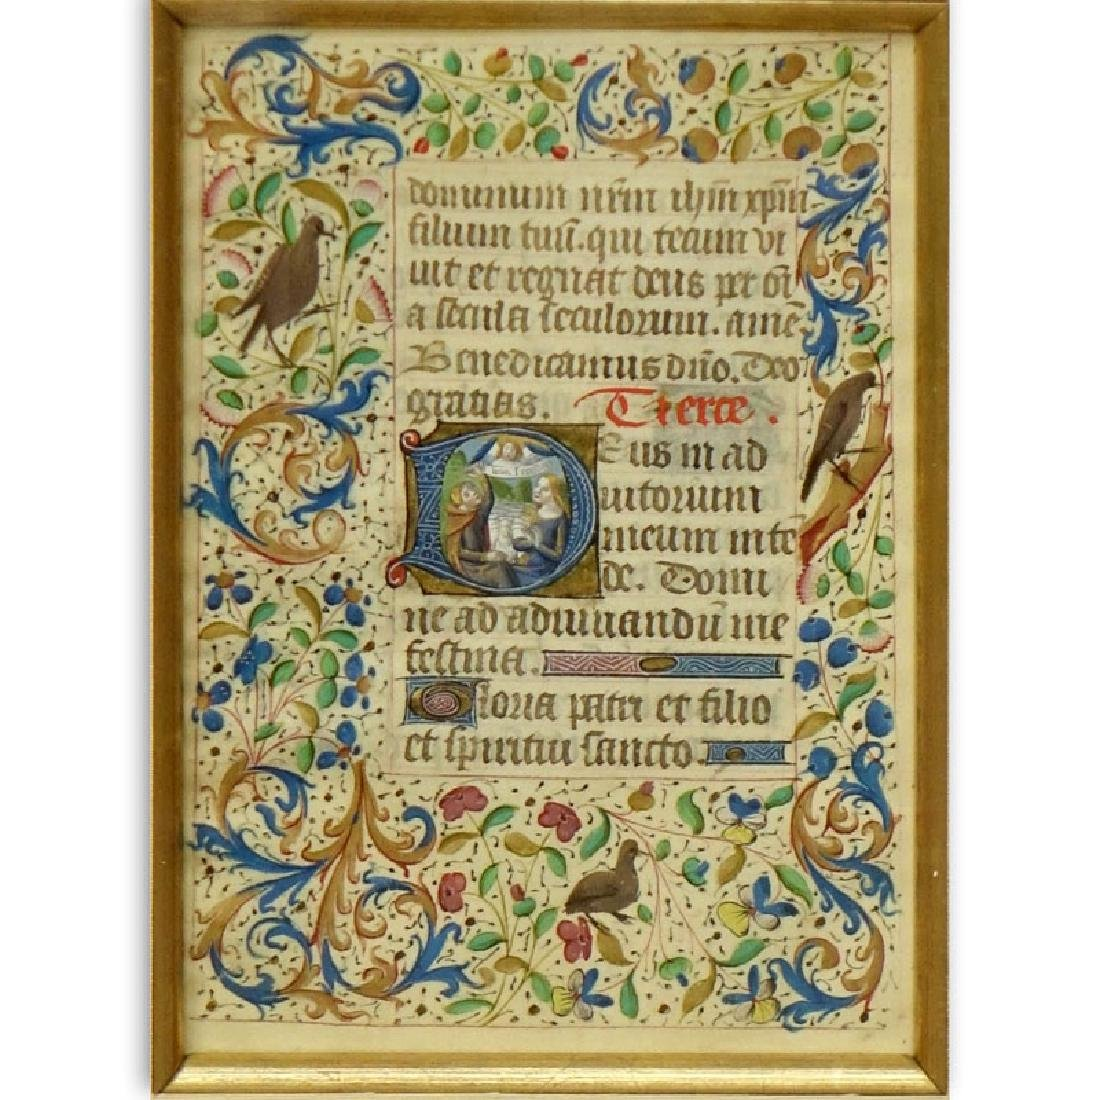 Early Hand Painted Illuminated Manuscript in finely